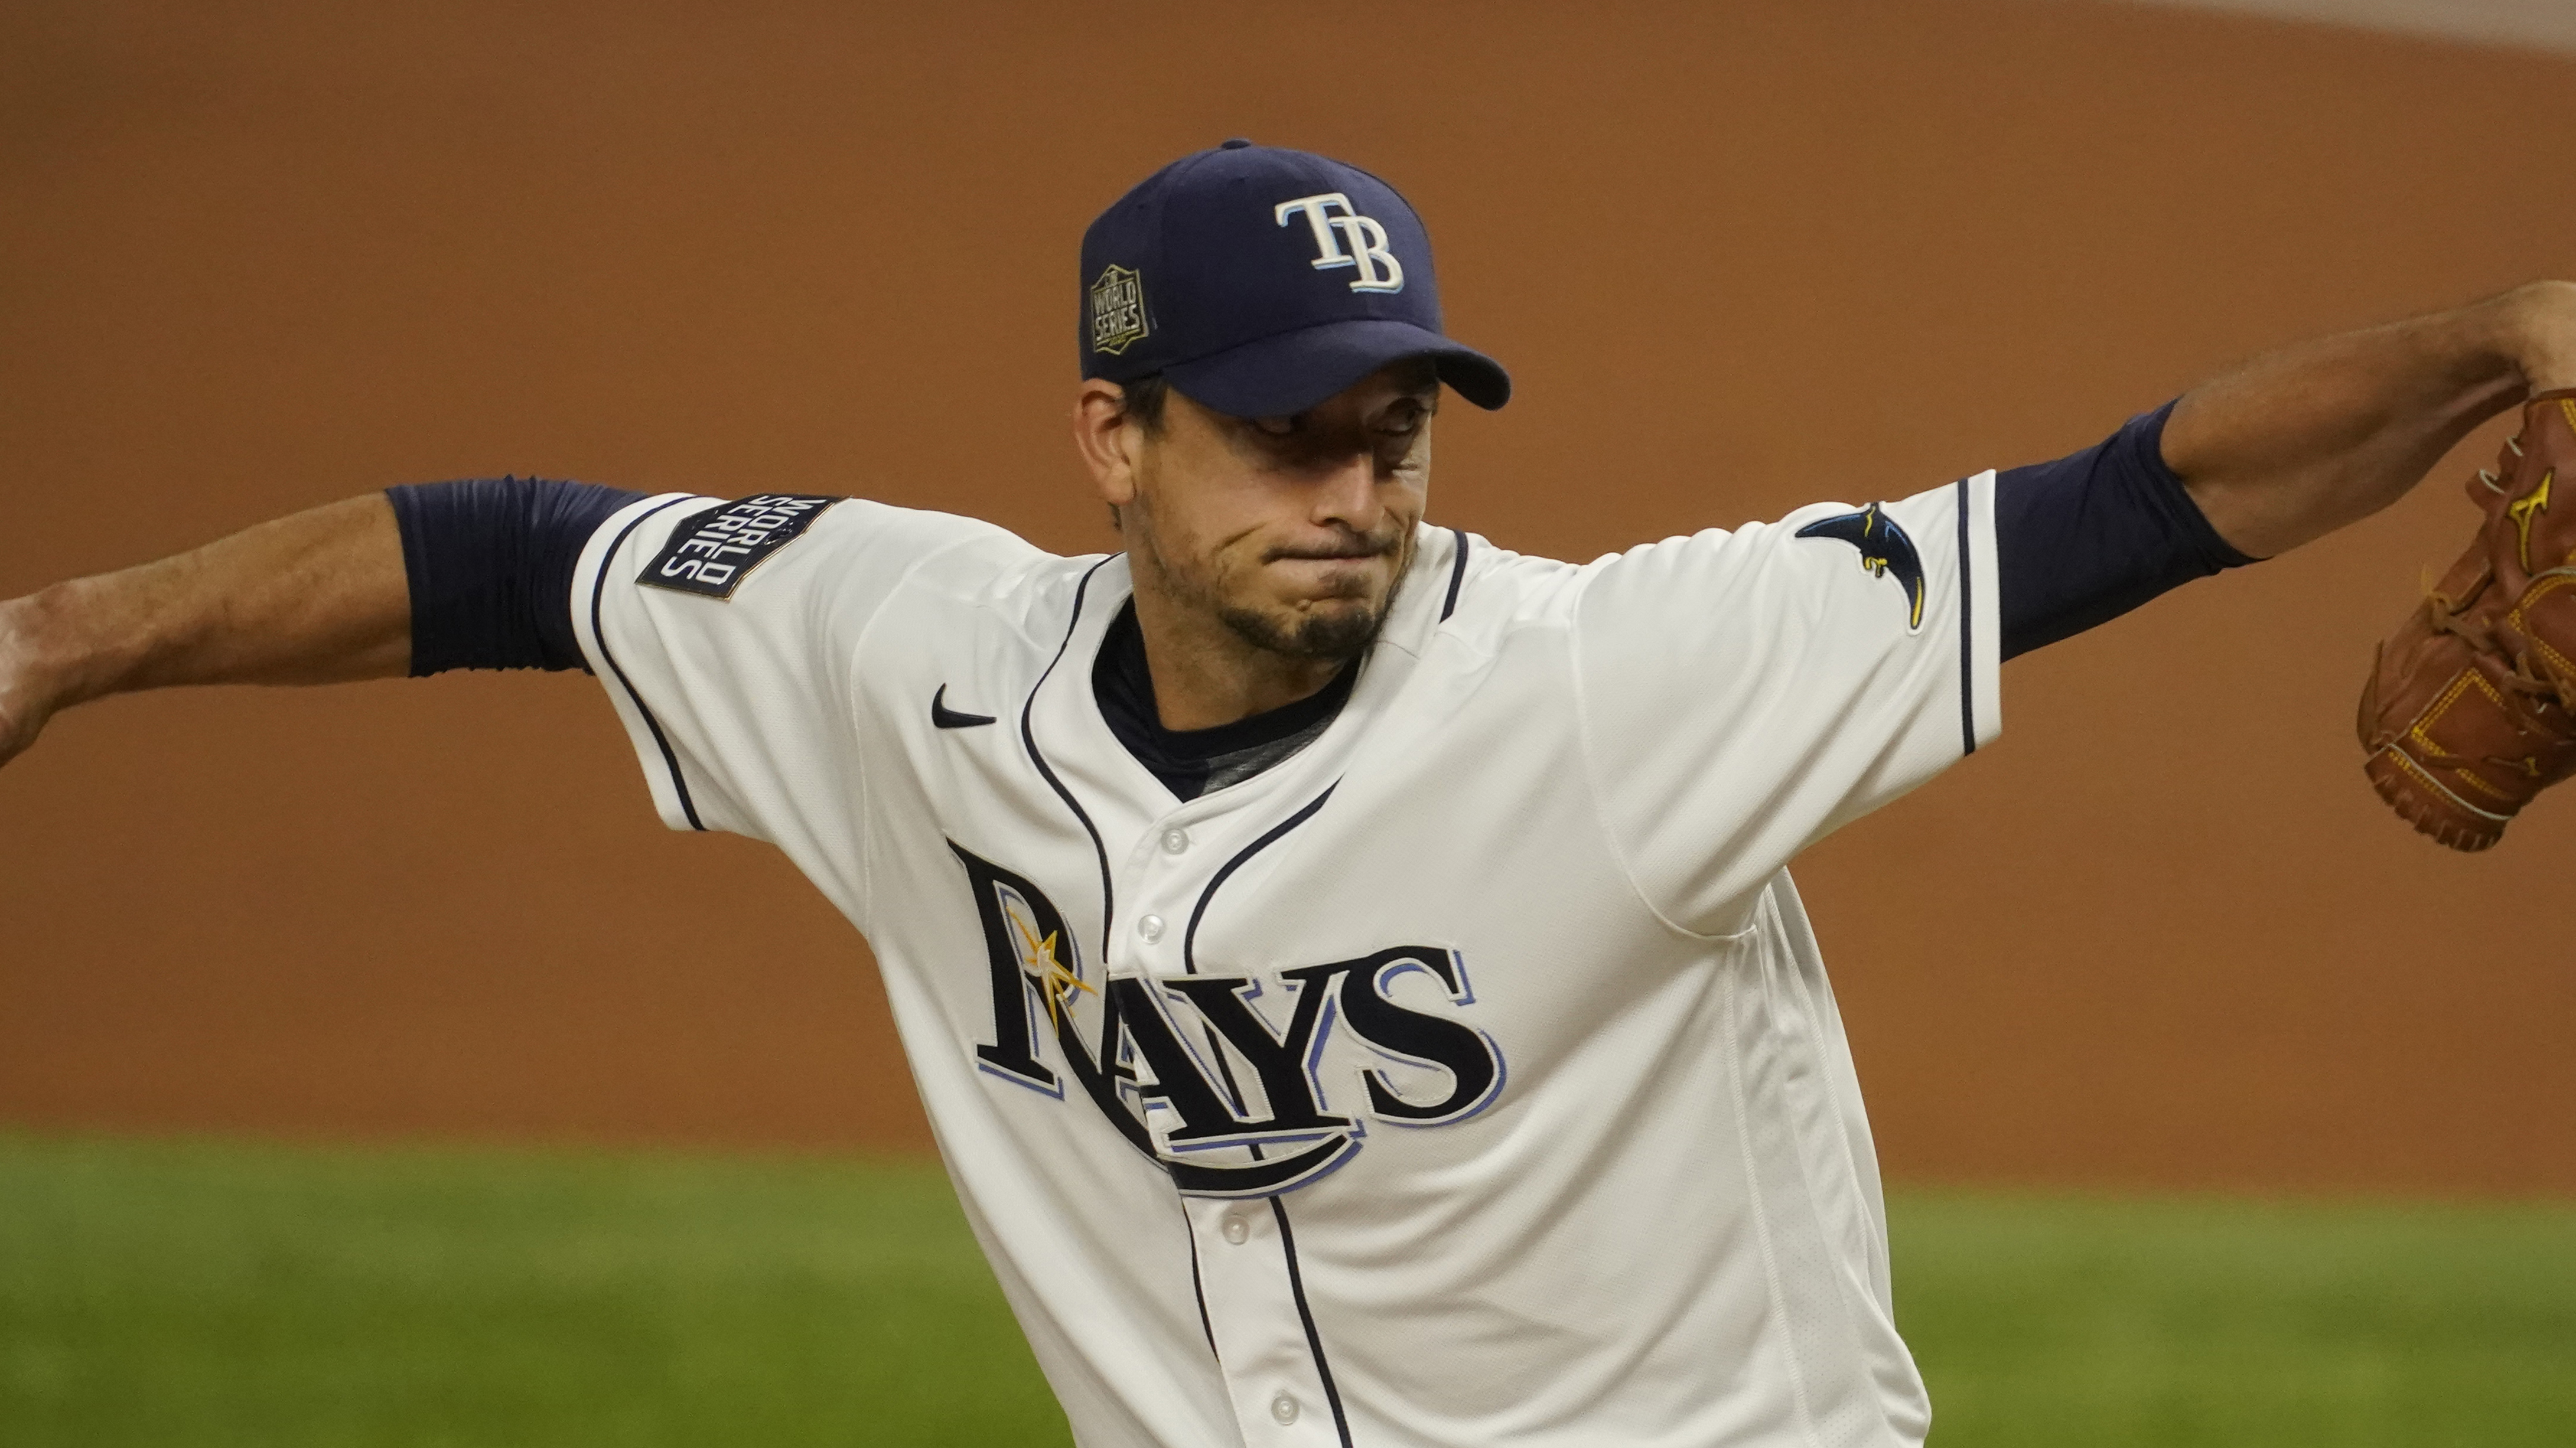 charlie morton leaves rays for 1 year 15 million deal with braves wfla https www wfla com sports charlie morton leaves rays for 1 year 15 million deal with braves